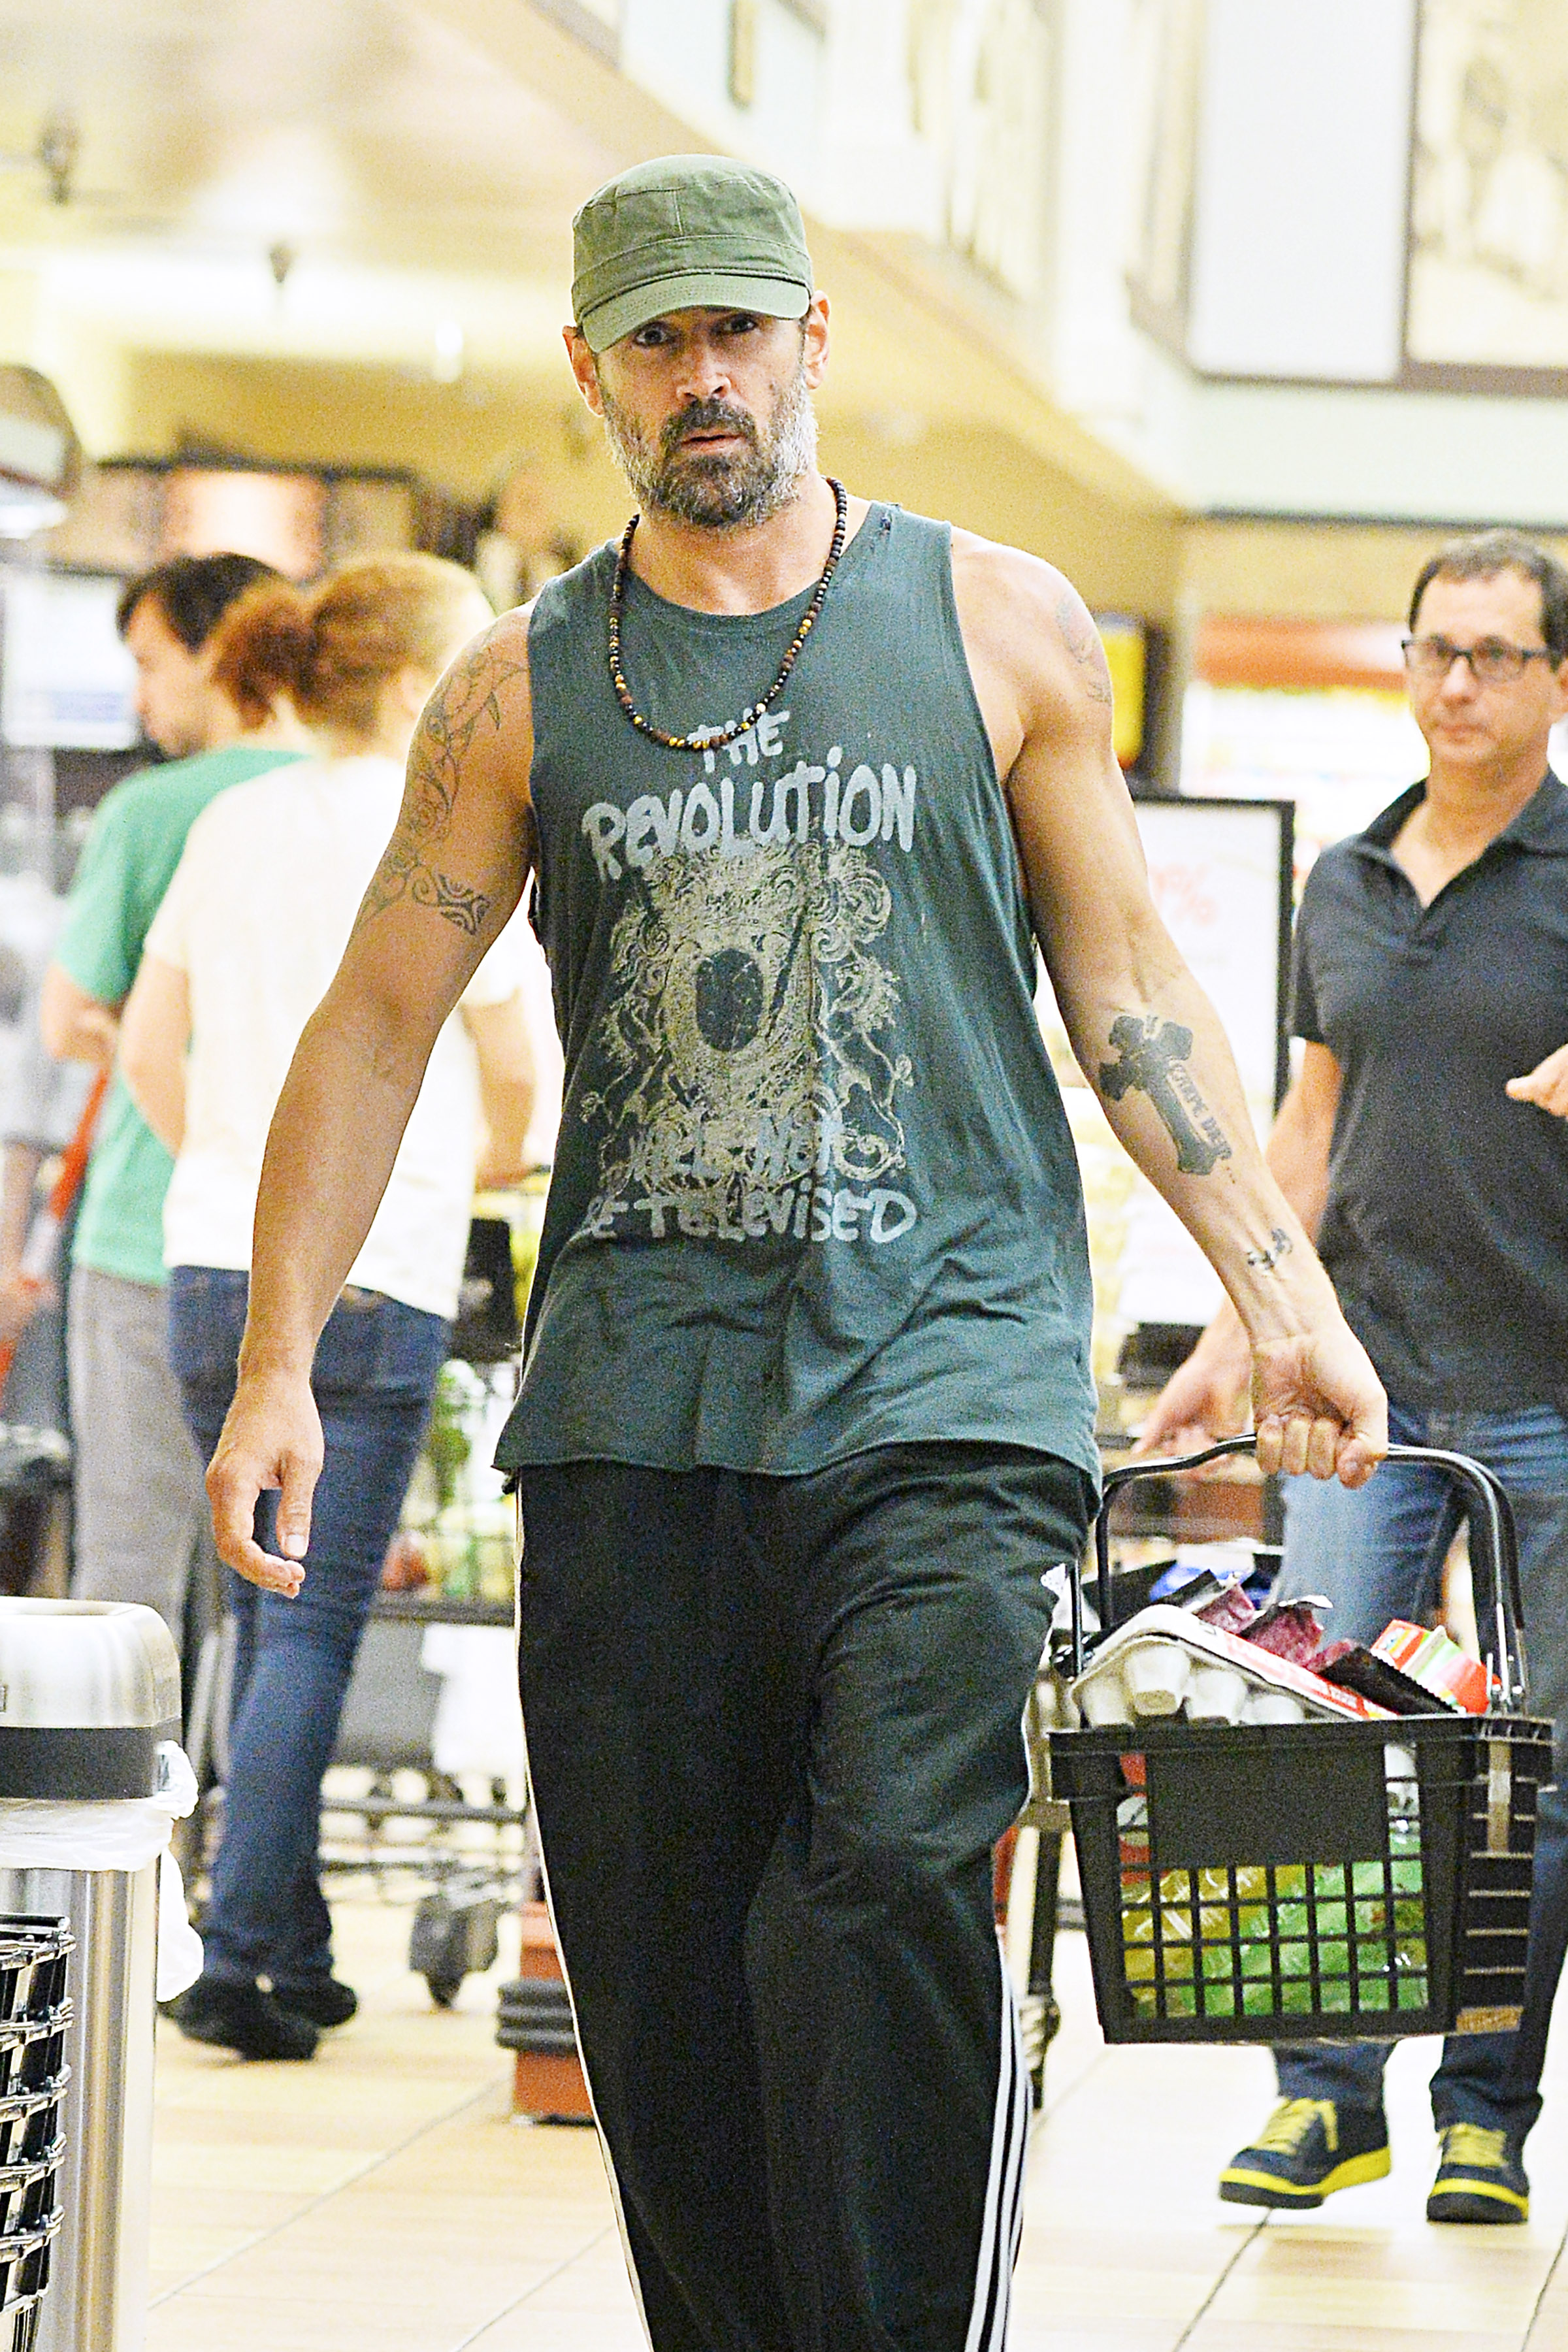 EXCLUSIVE Colin Farrell Shows Off His Muscular Arms On Late Night Grocery Run